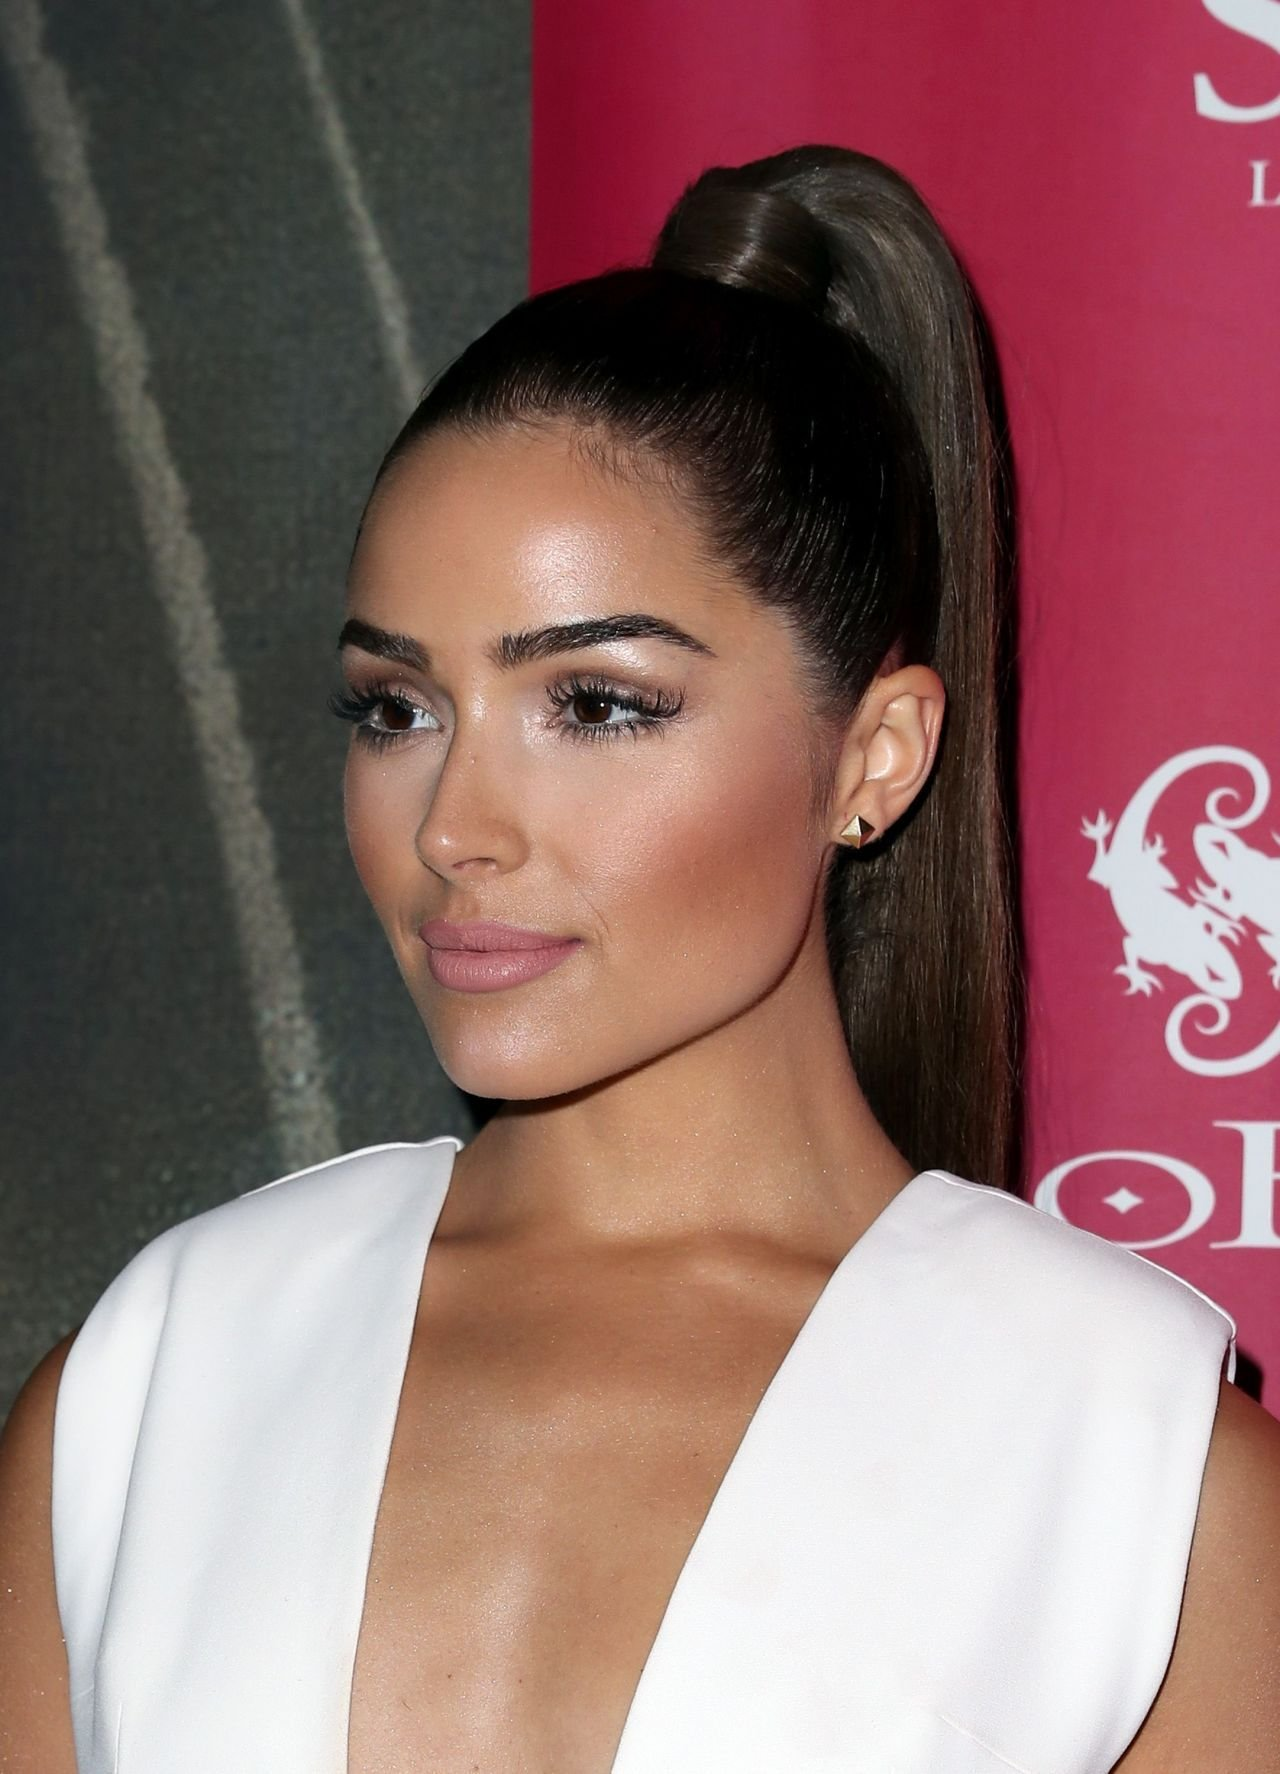 New Olivia Culpo Sobe Celebrates 21St Birthday At Sls Hotel In Las Vegas 9 3 2016 Ideas With Pictures